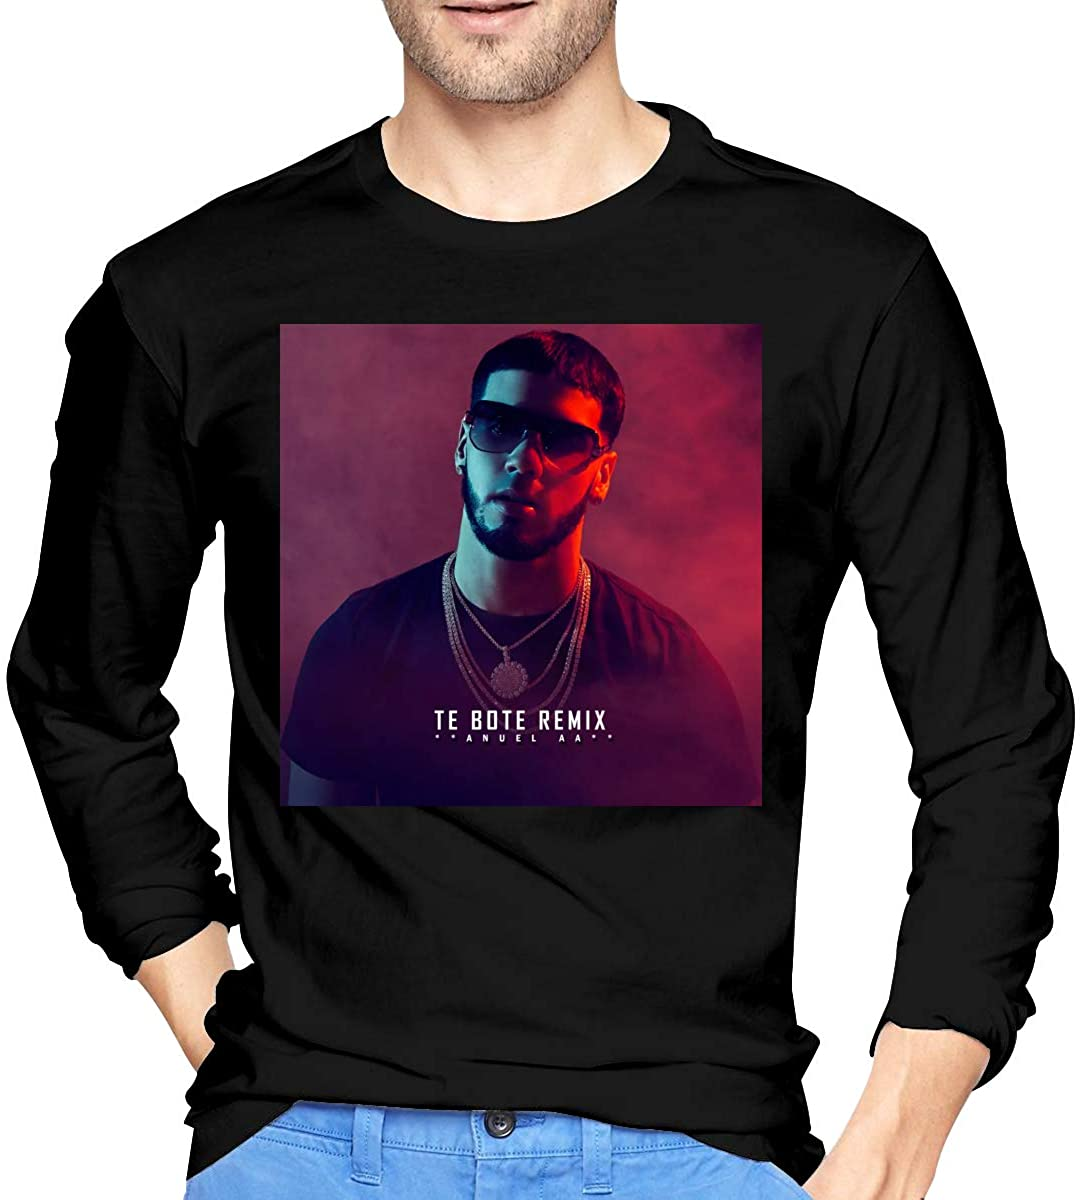 StephaSport Anuel AA Te Bote Remix Man's Cotton Classic Long Sleeve T-Shirts Casual Shirts